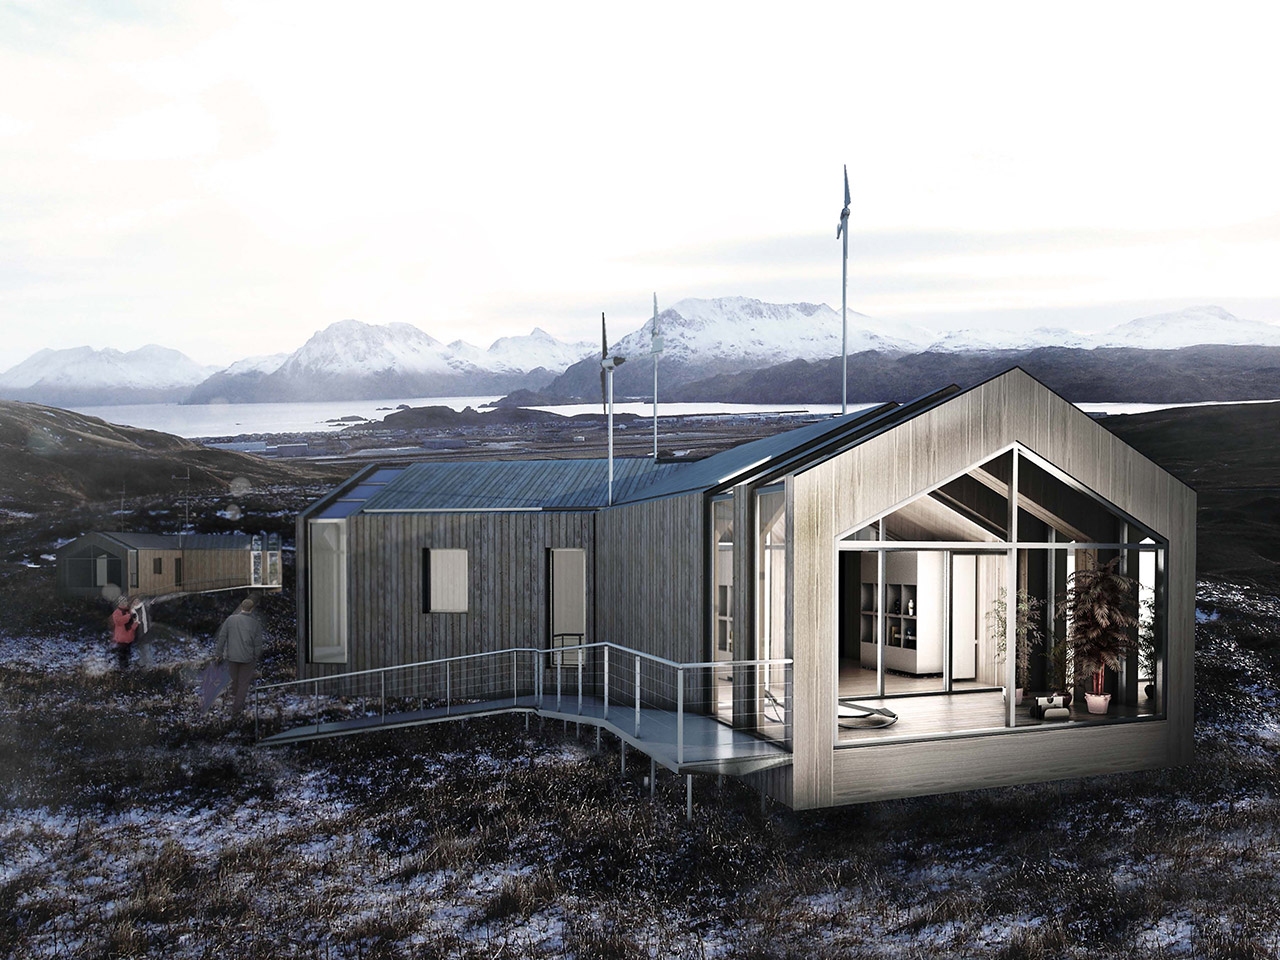 24Studio's Honorable Mention for the Living Aleutian Home Design Competition 2012